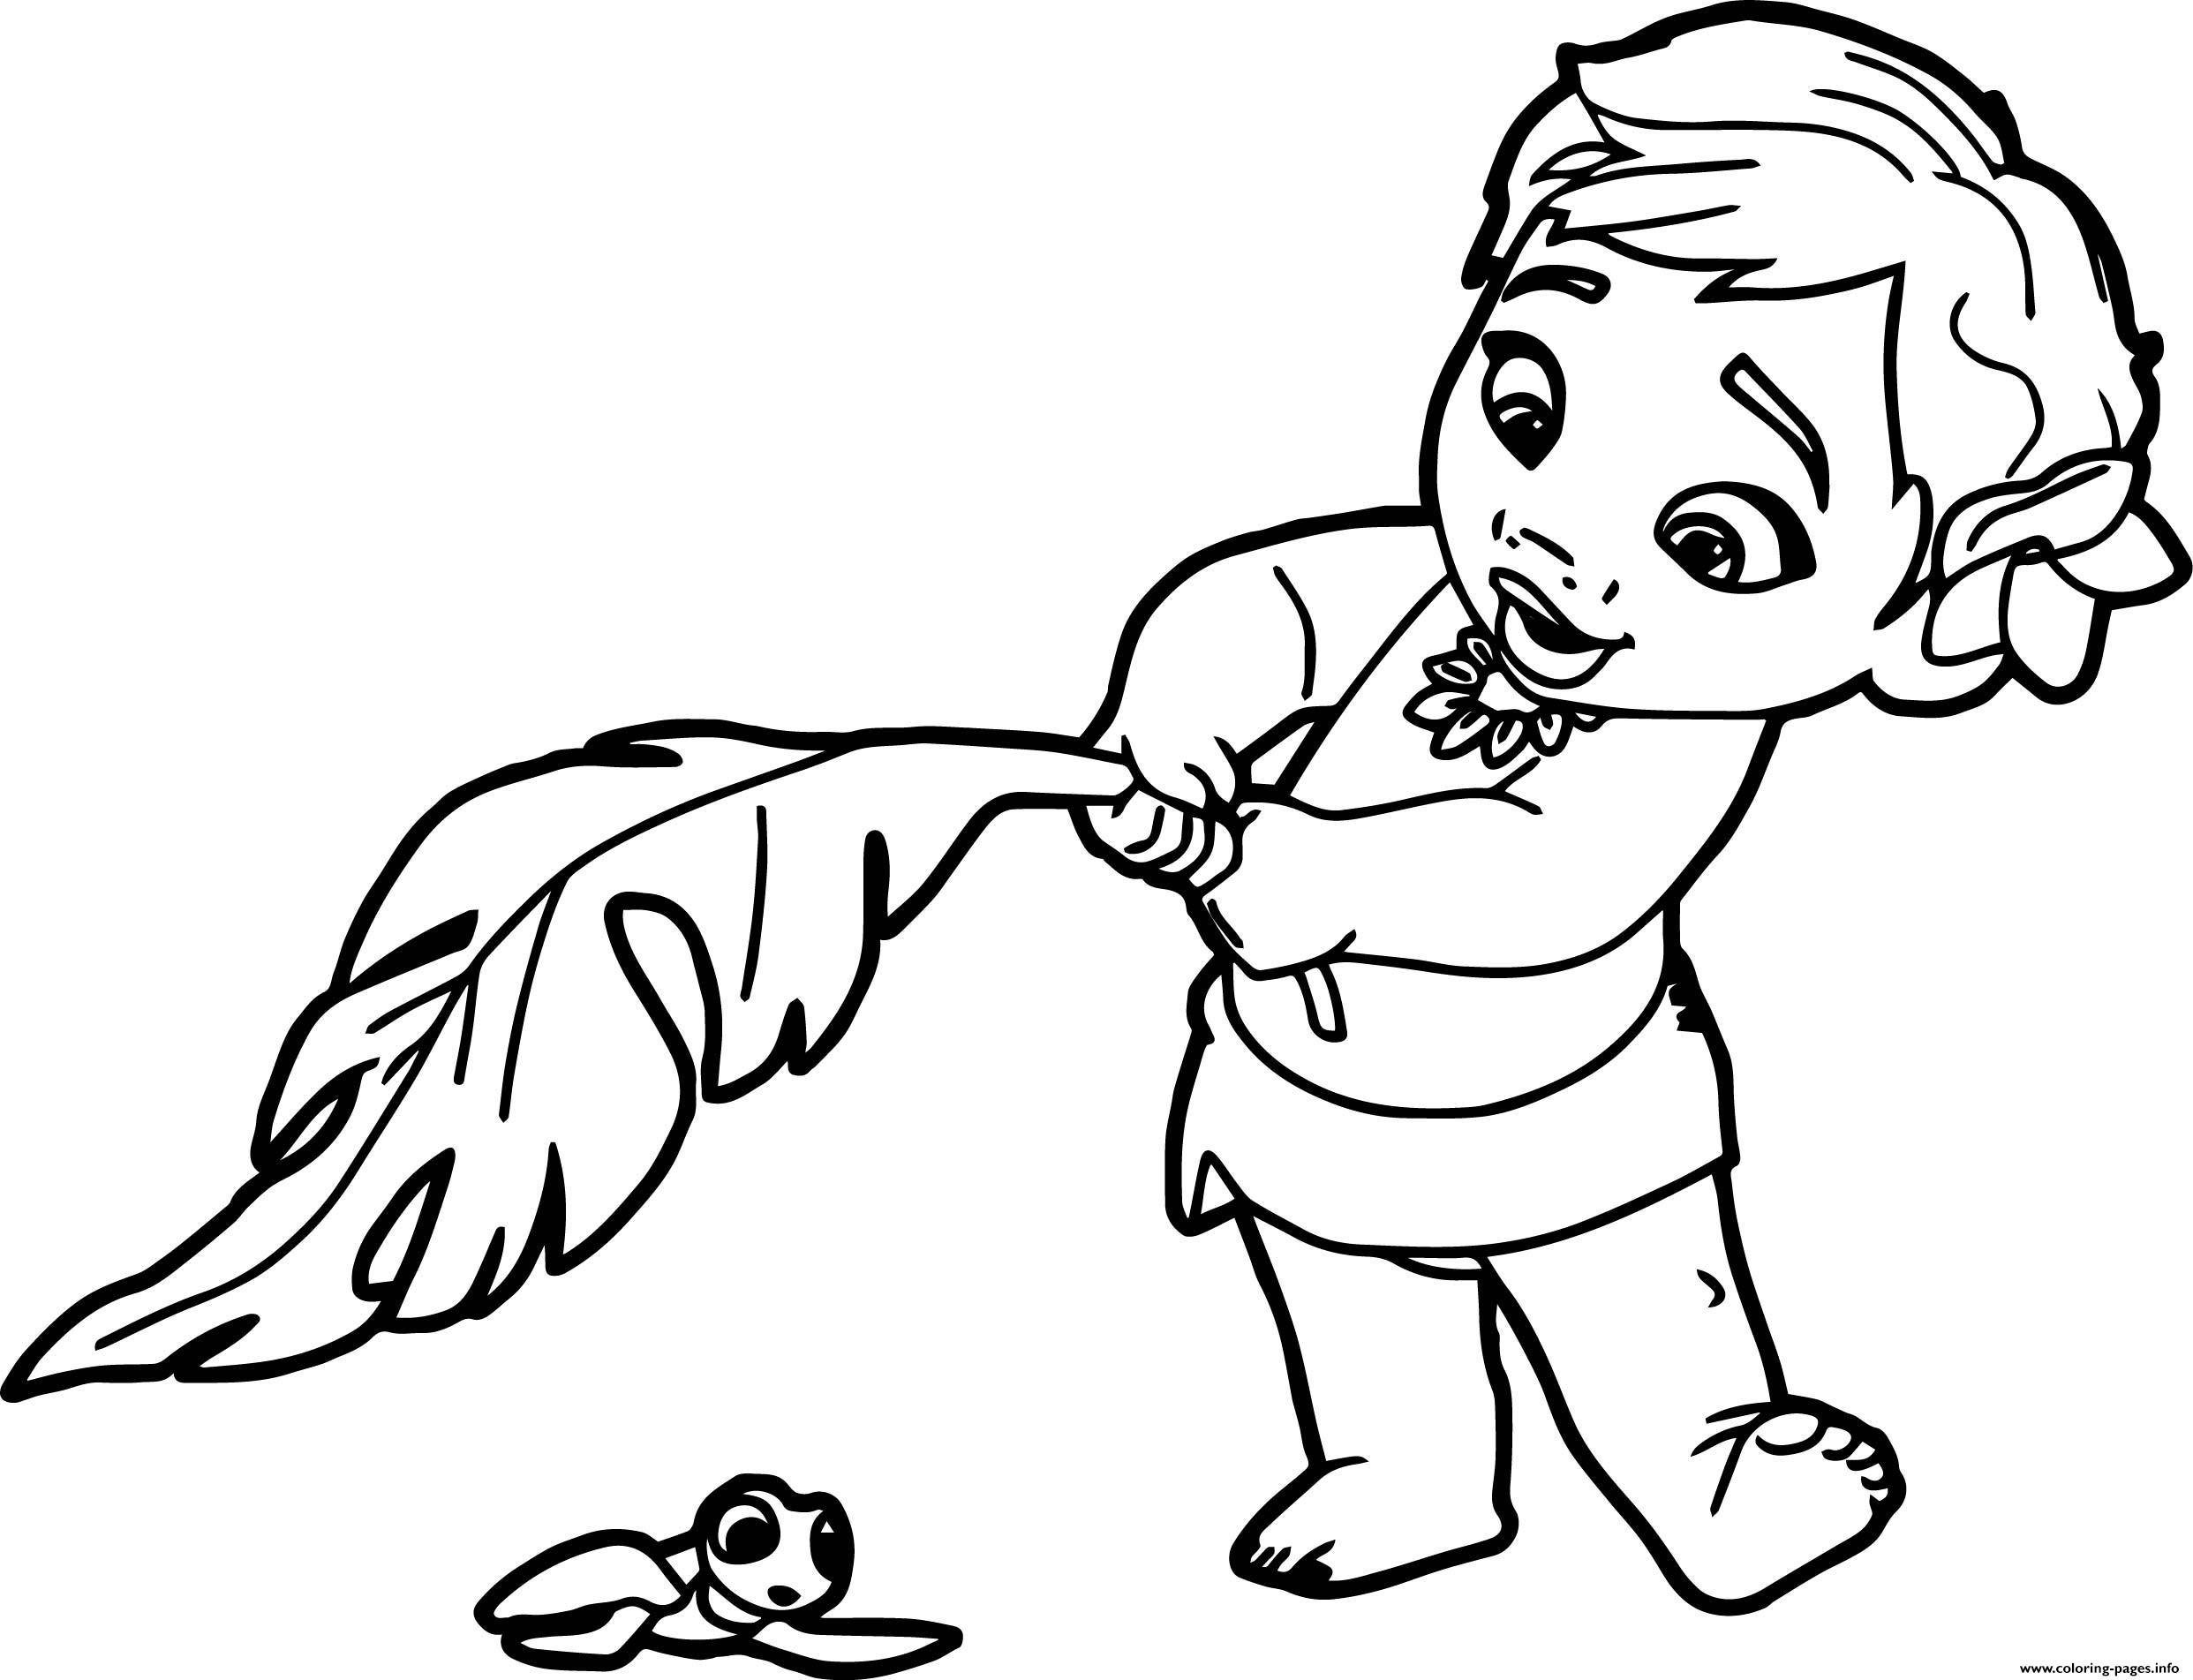 Baby Moana Princess Disney Coloring Pages Print Download